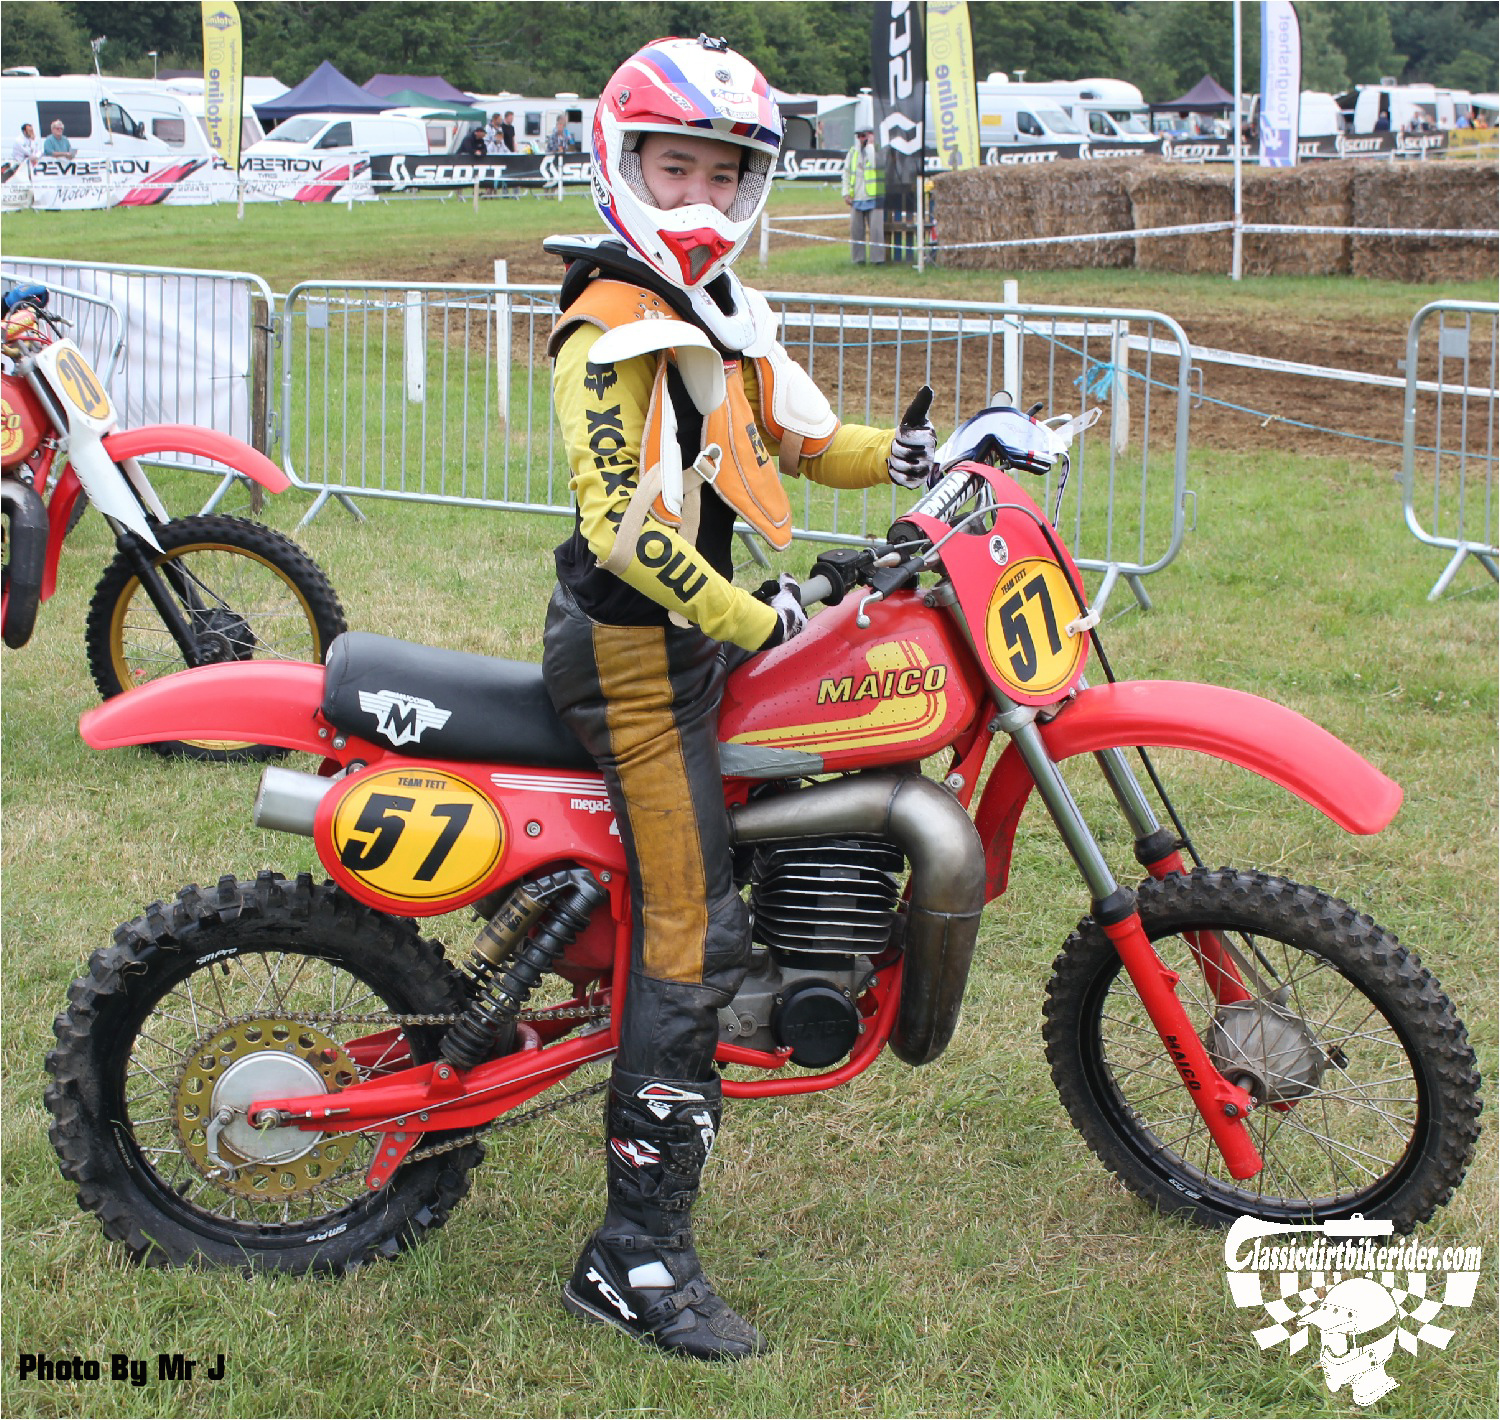 king of the castle 2015 photos Farleigh Castle twinshock motocross classicdirtbikerider.com 4